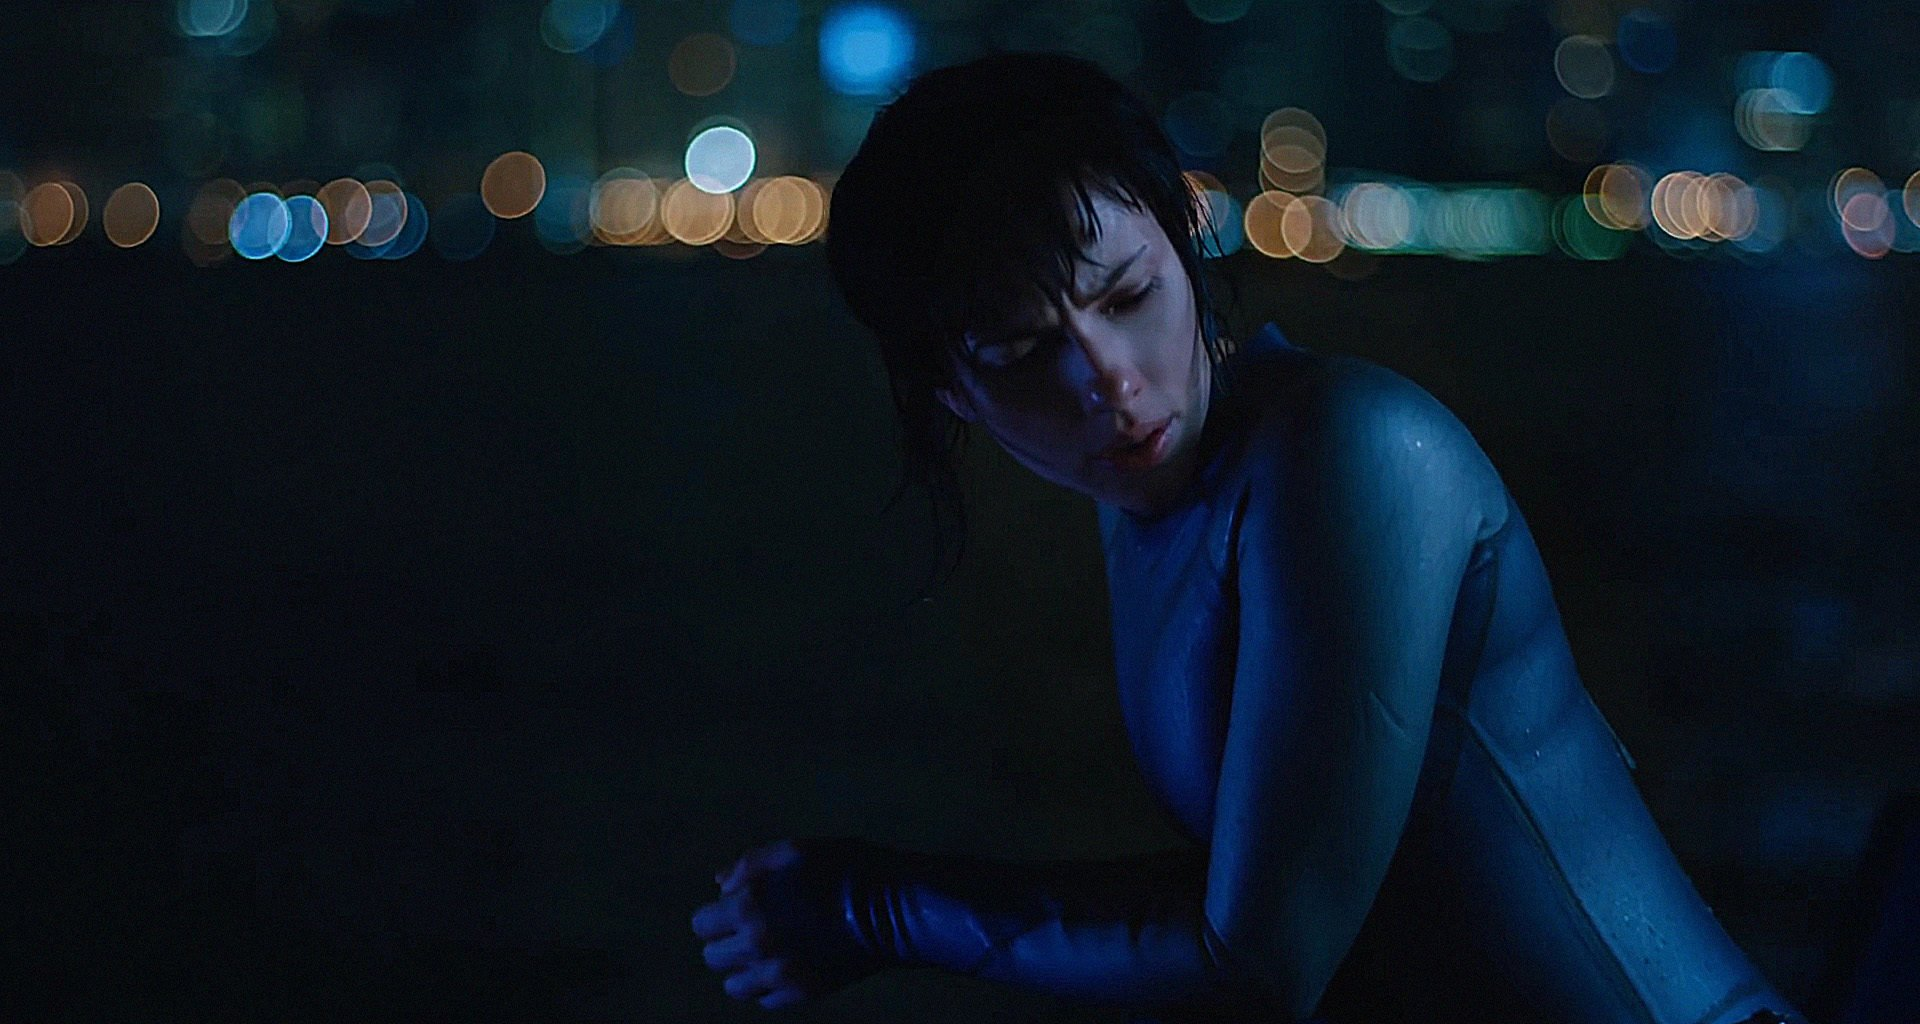 Ghost In The Shell (2017) Wallpaper And Background Image